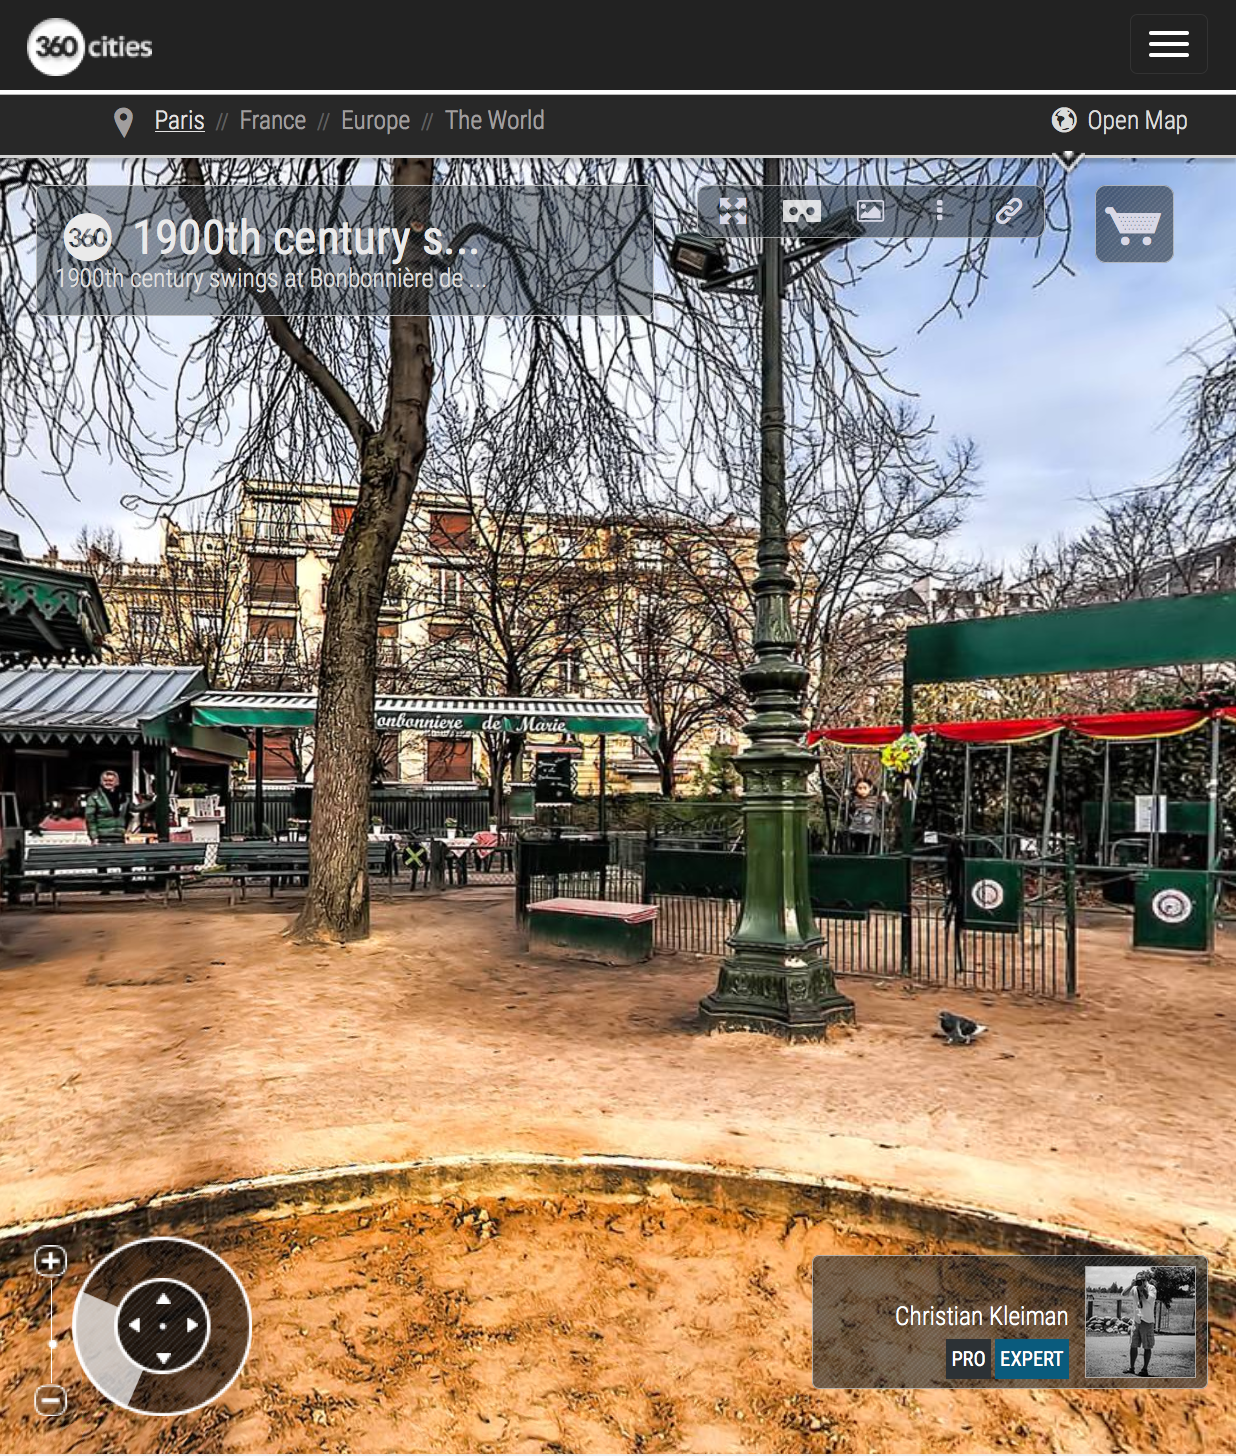 Swings at Bonbonnière de Marie - Winter at Champ de Mars Garden - Creative 360 Spherical Panoramic Photography from places in Paris by © Christian Kleiman